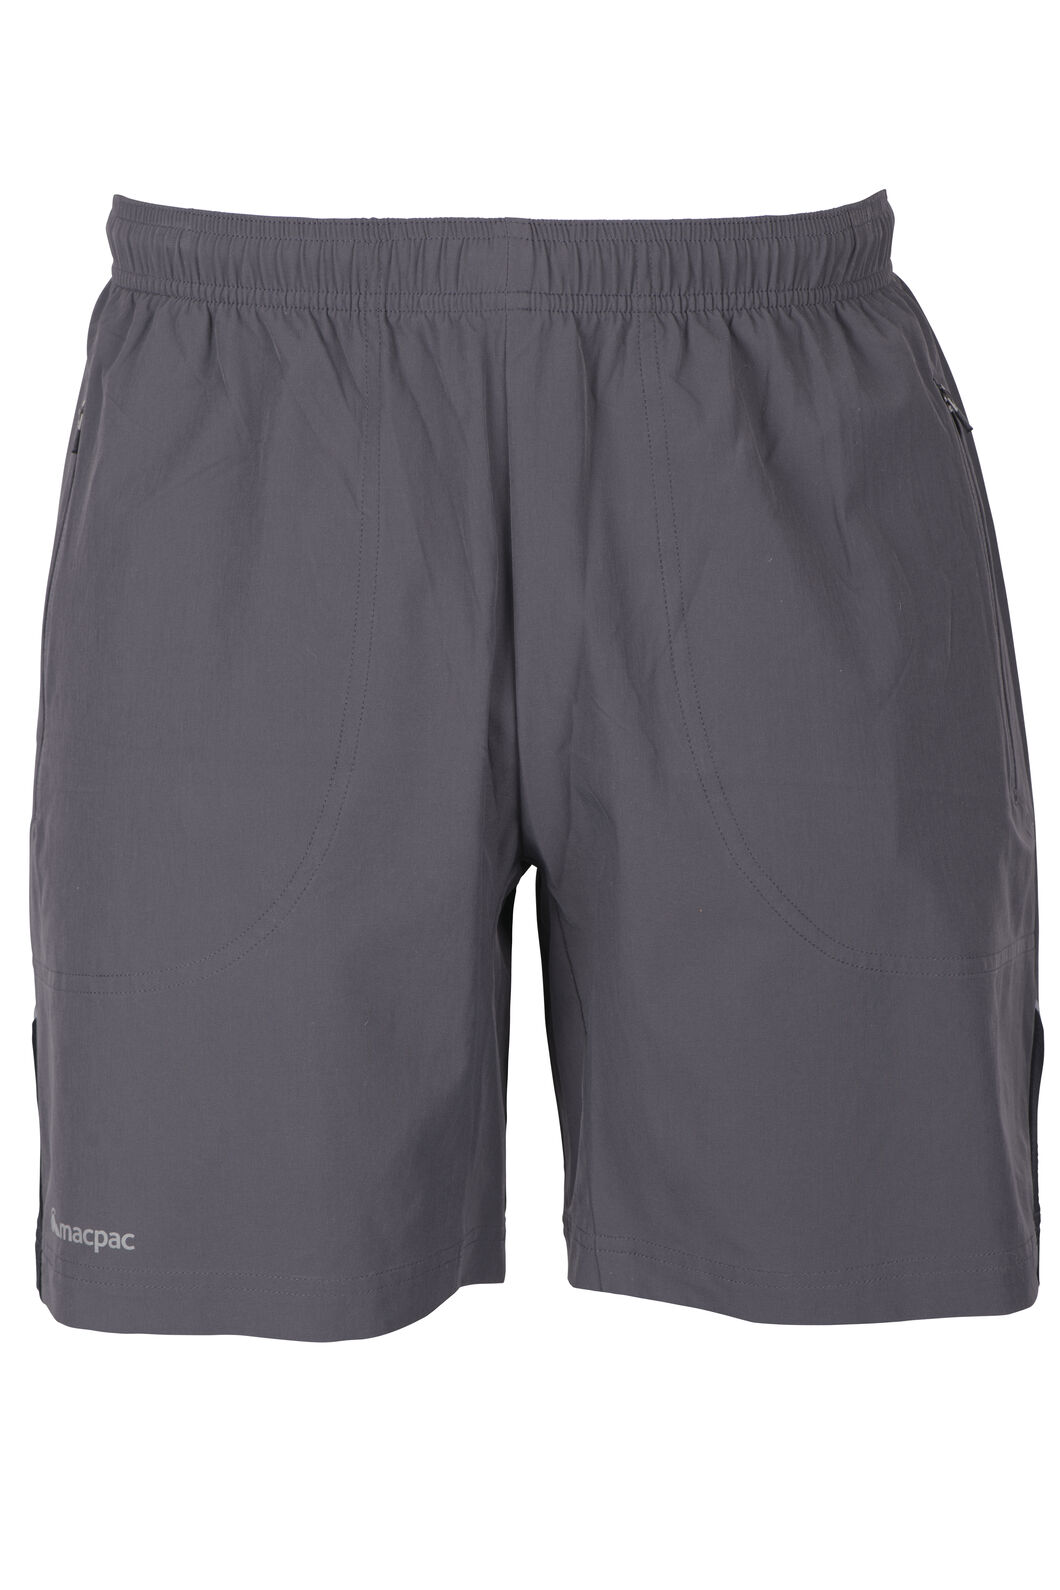 Macpac Fast Track Shorts - Men's, Forged Iron/Blue Aster, hi-res